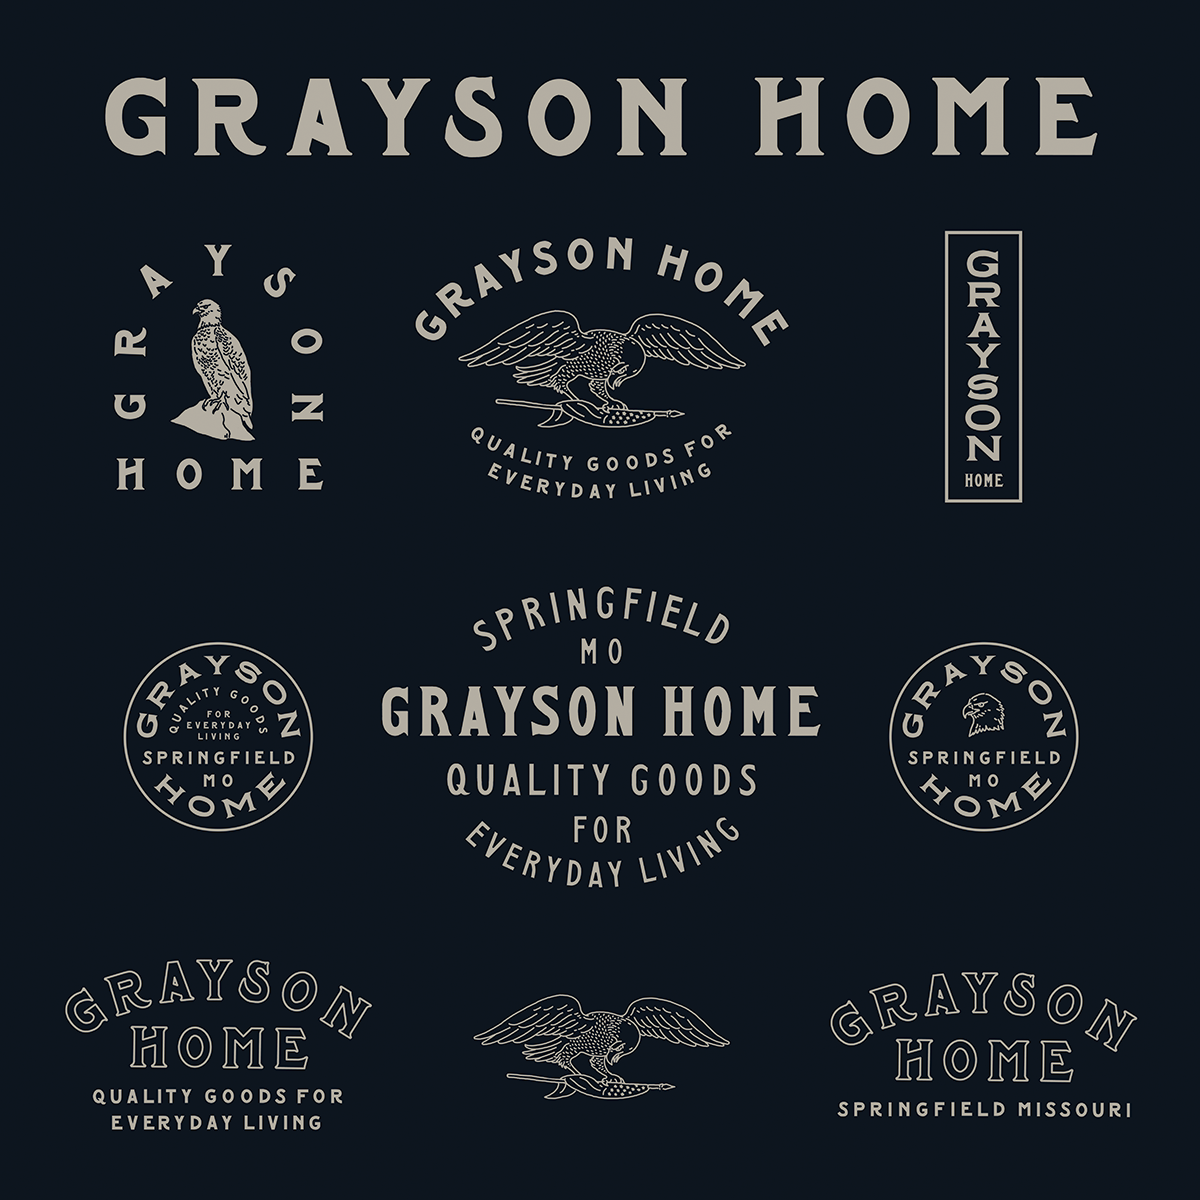 435923cc9 Grayson Home #Logo #Variations #Type | Logos, Branding and Identity ...